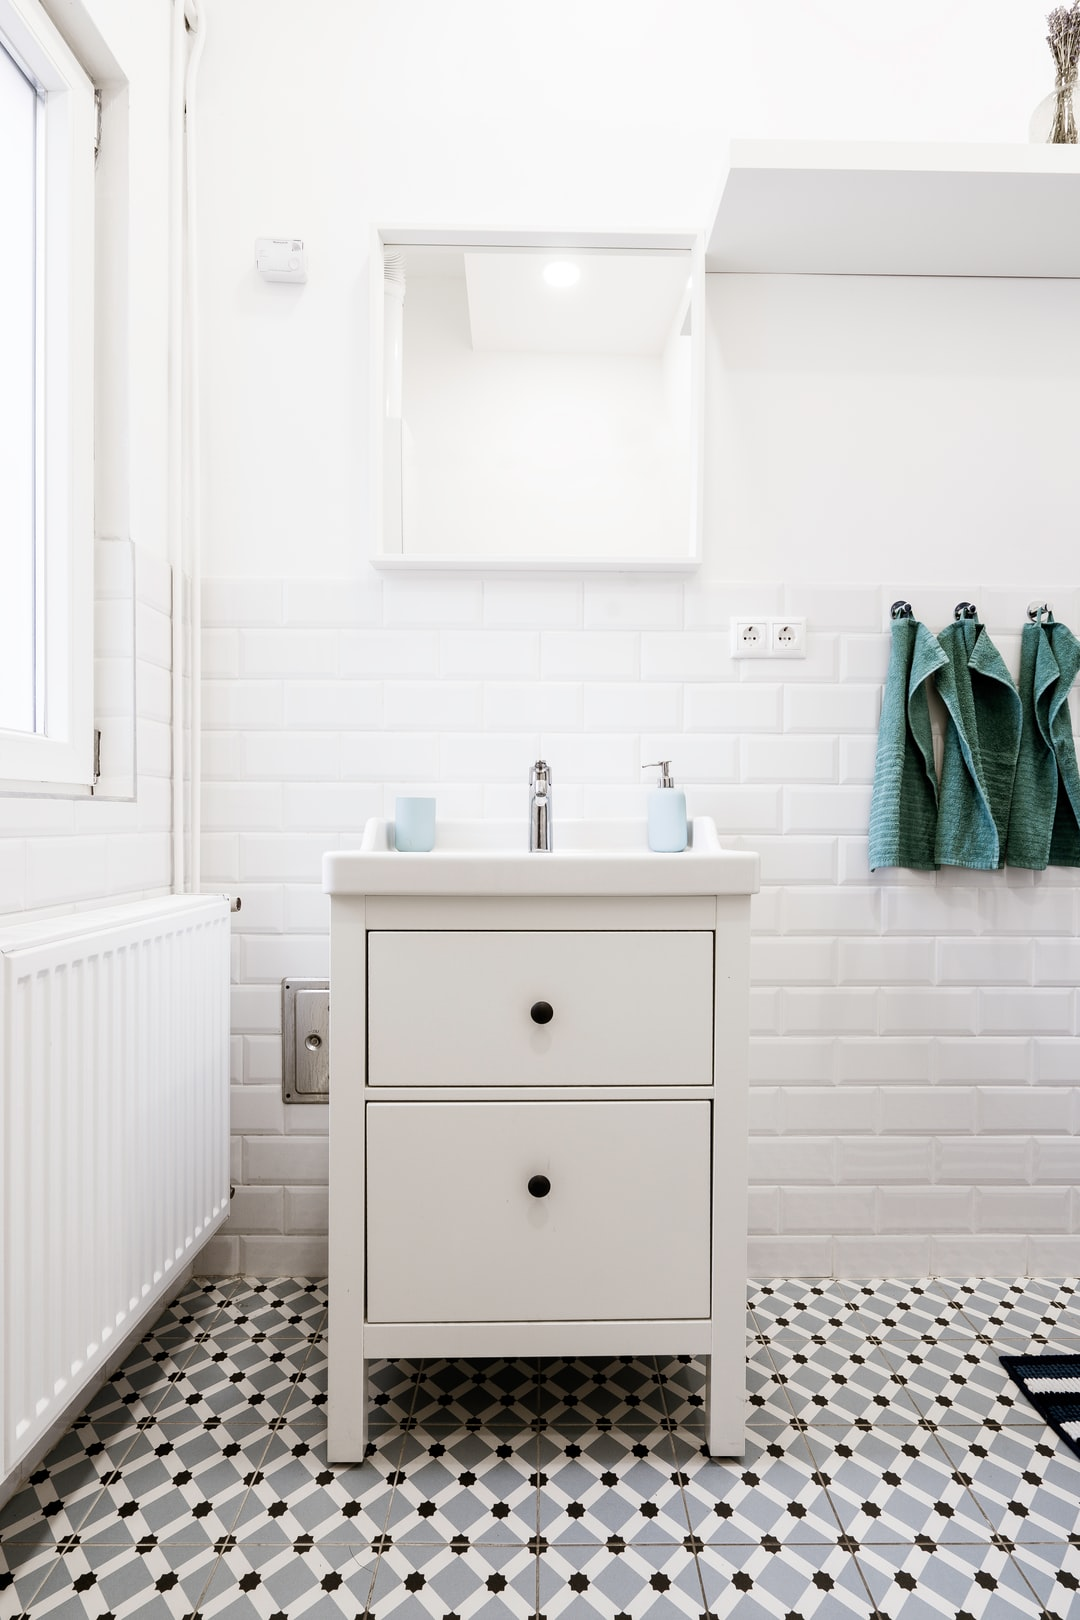 Bathroom tiles with a pattern